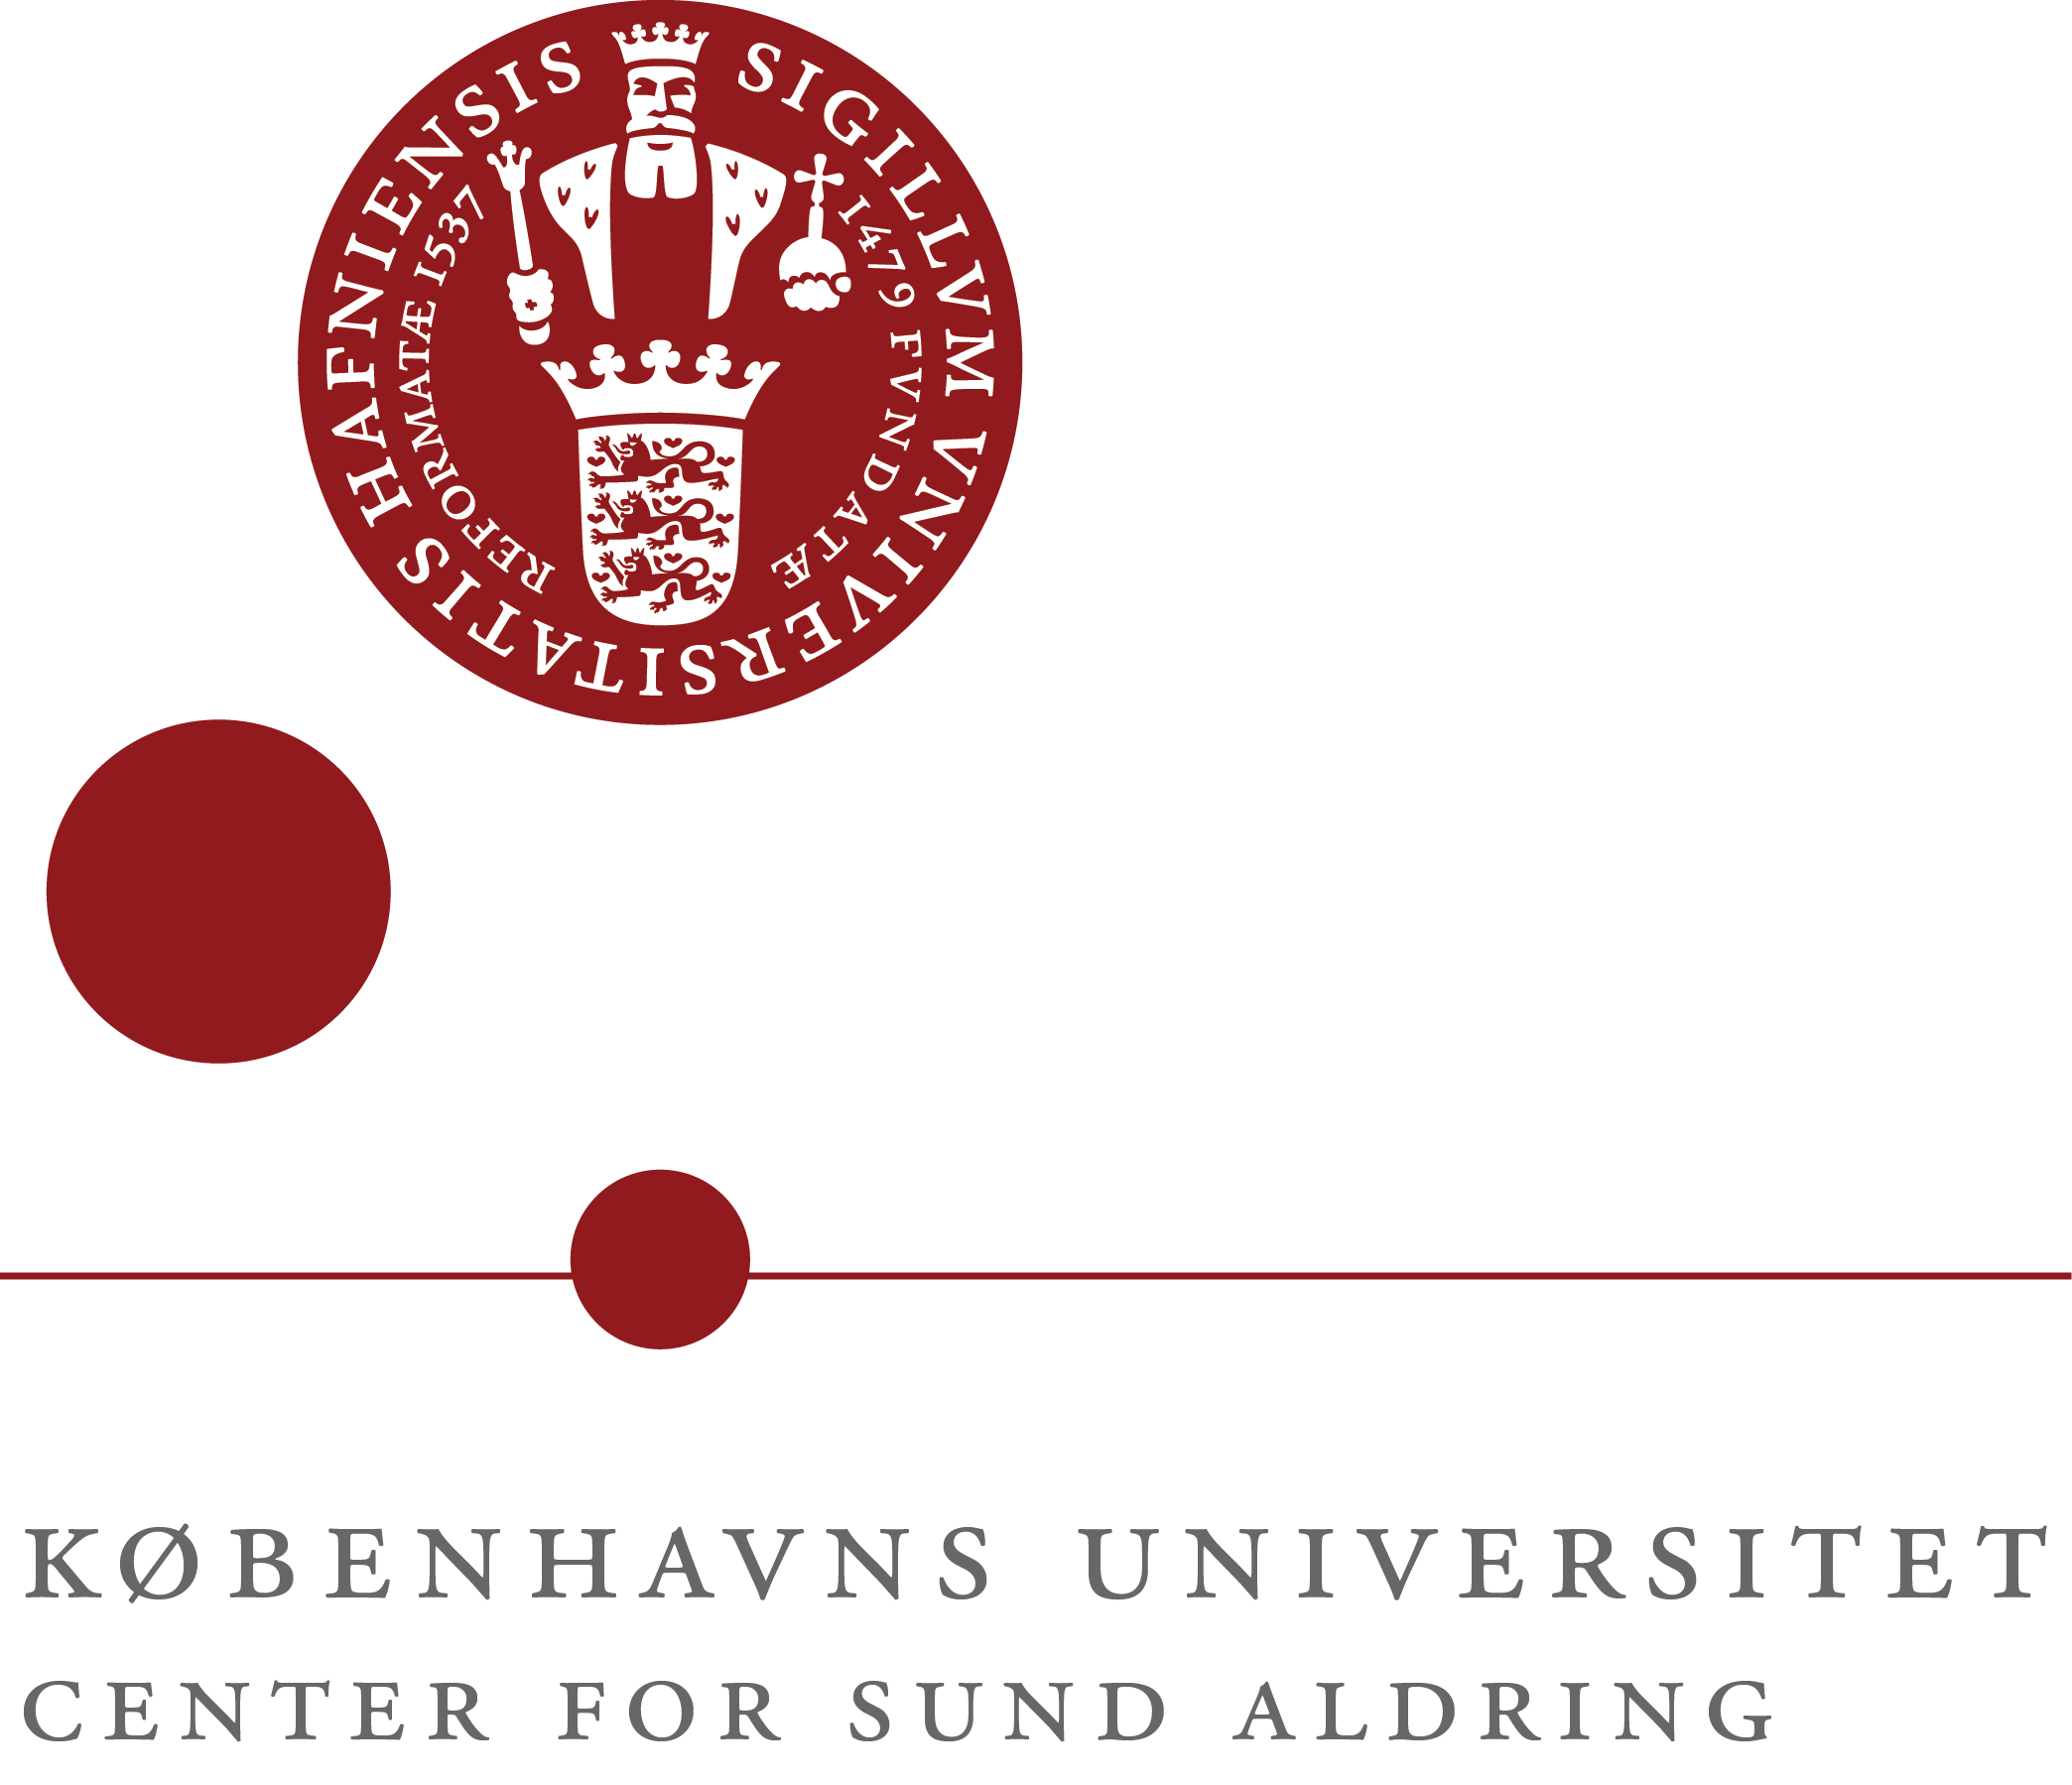 Center for Sund Aldring